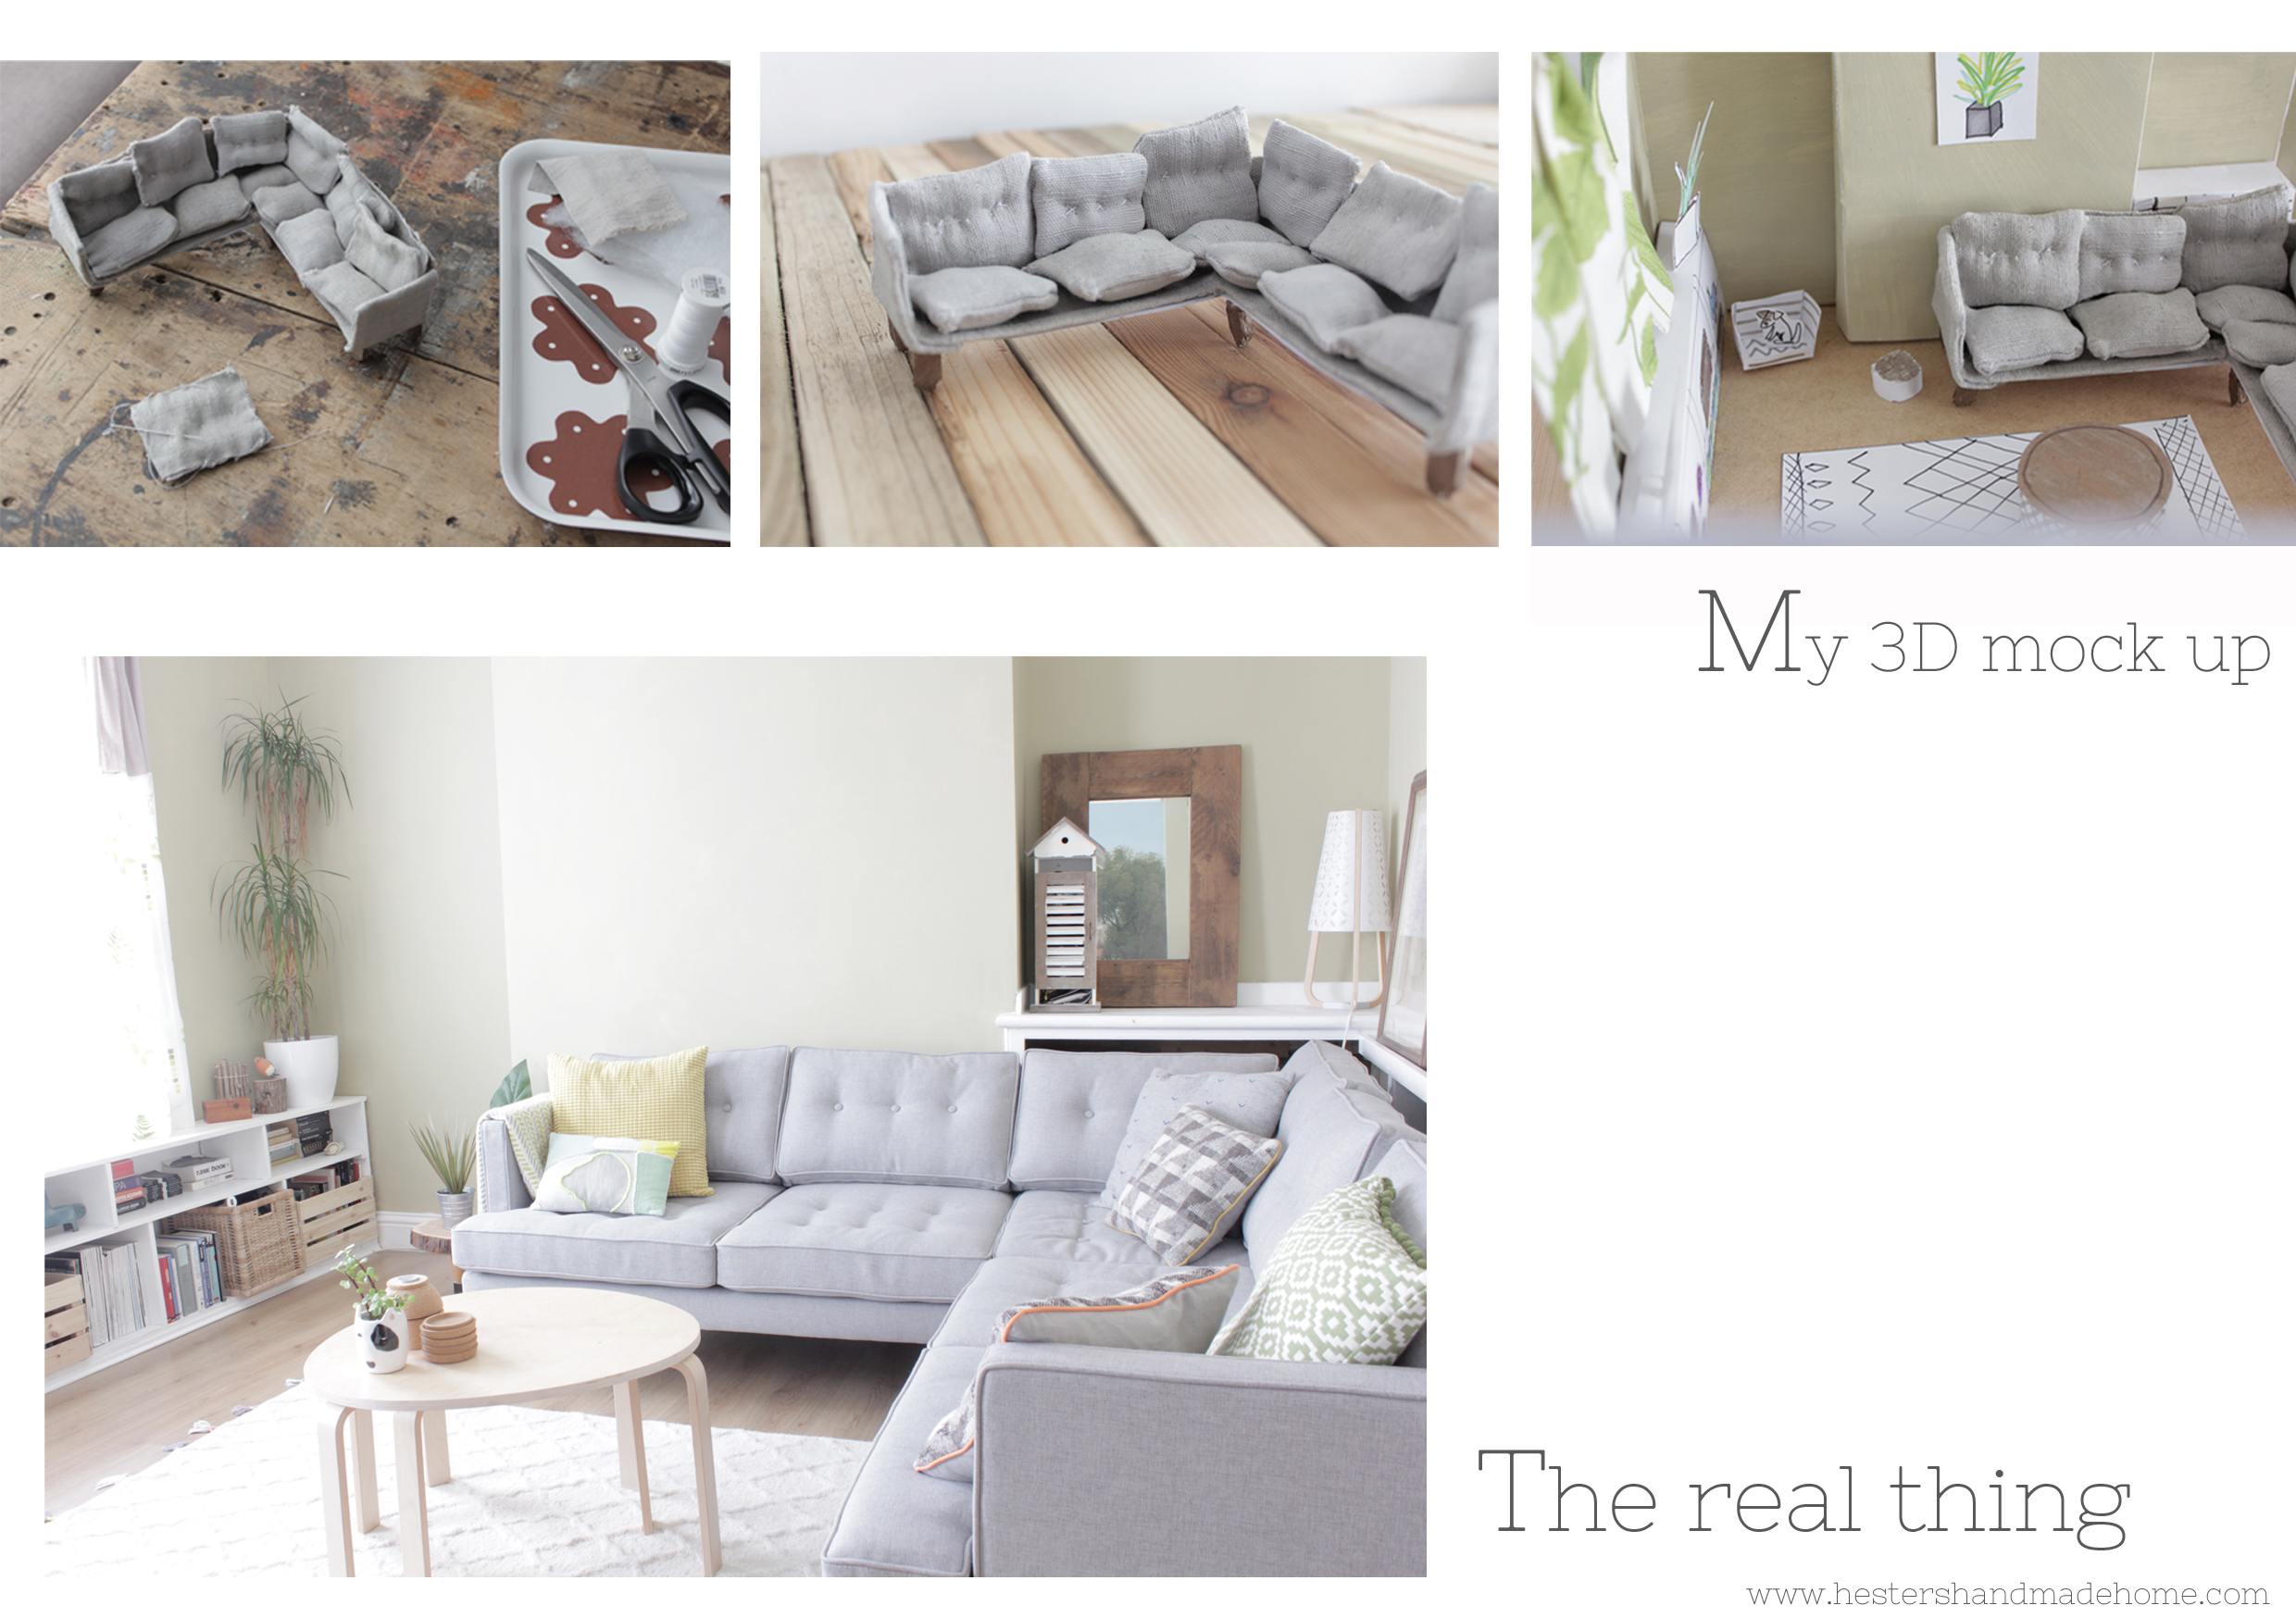 from 3d mock up to the real thing, my dream West Elm Sofa by Hesters handmade home